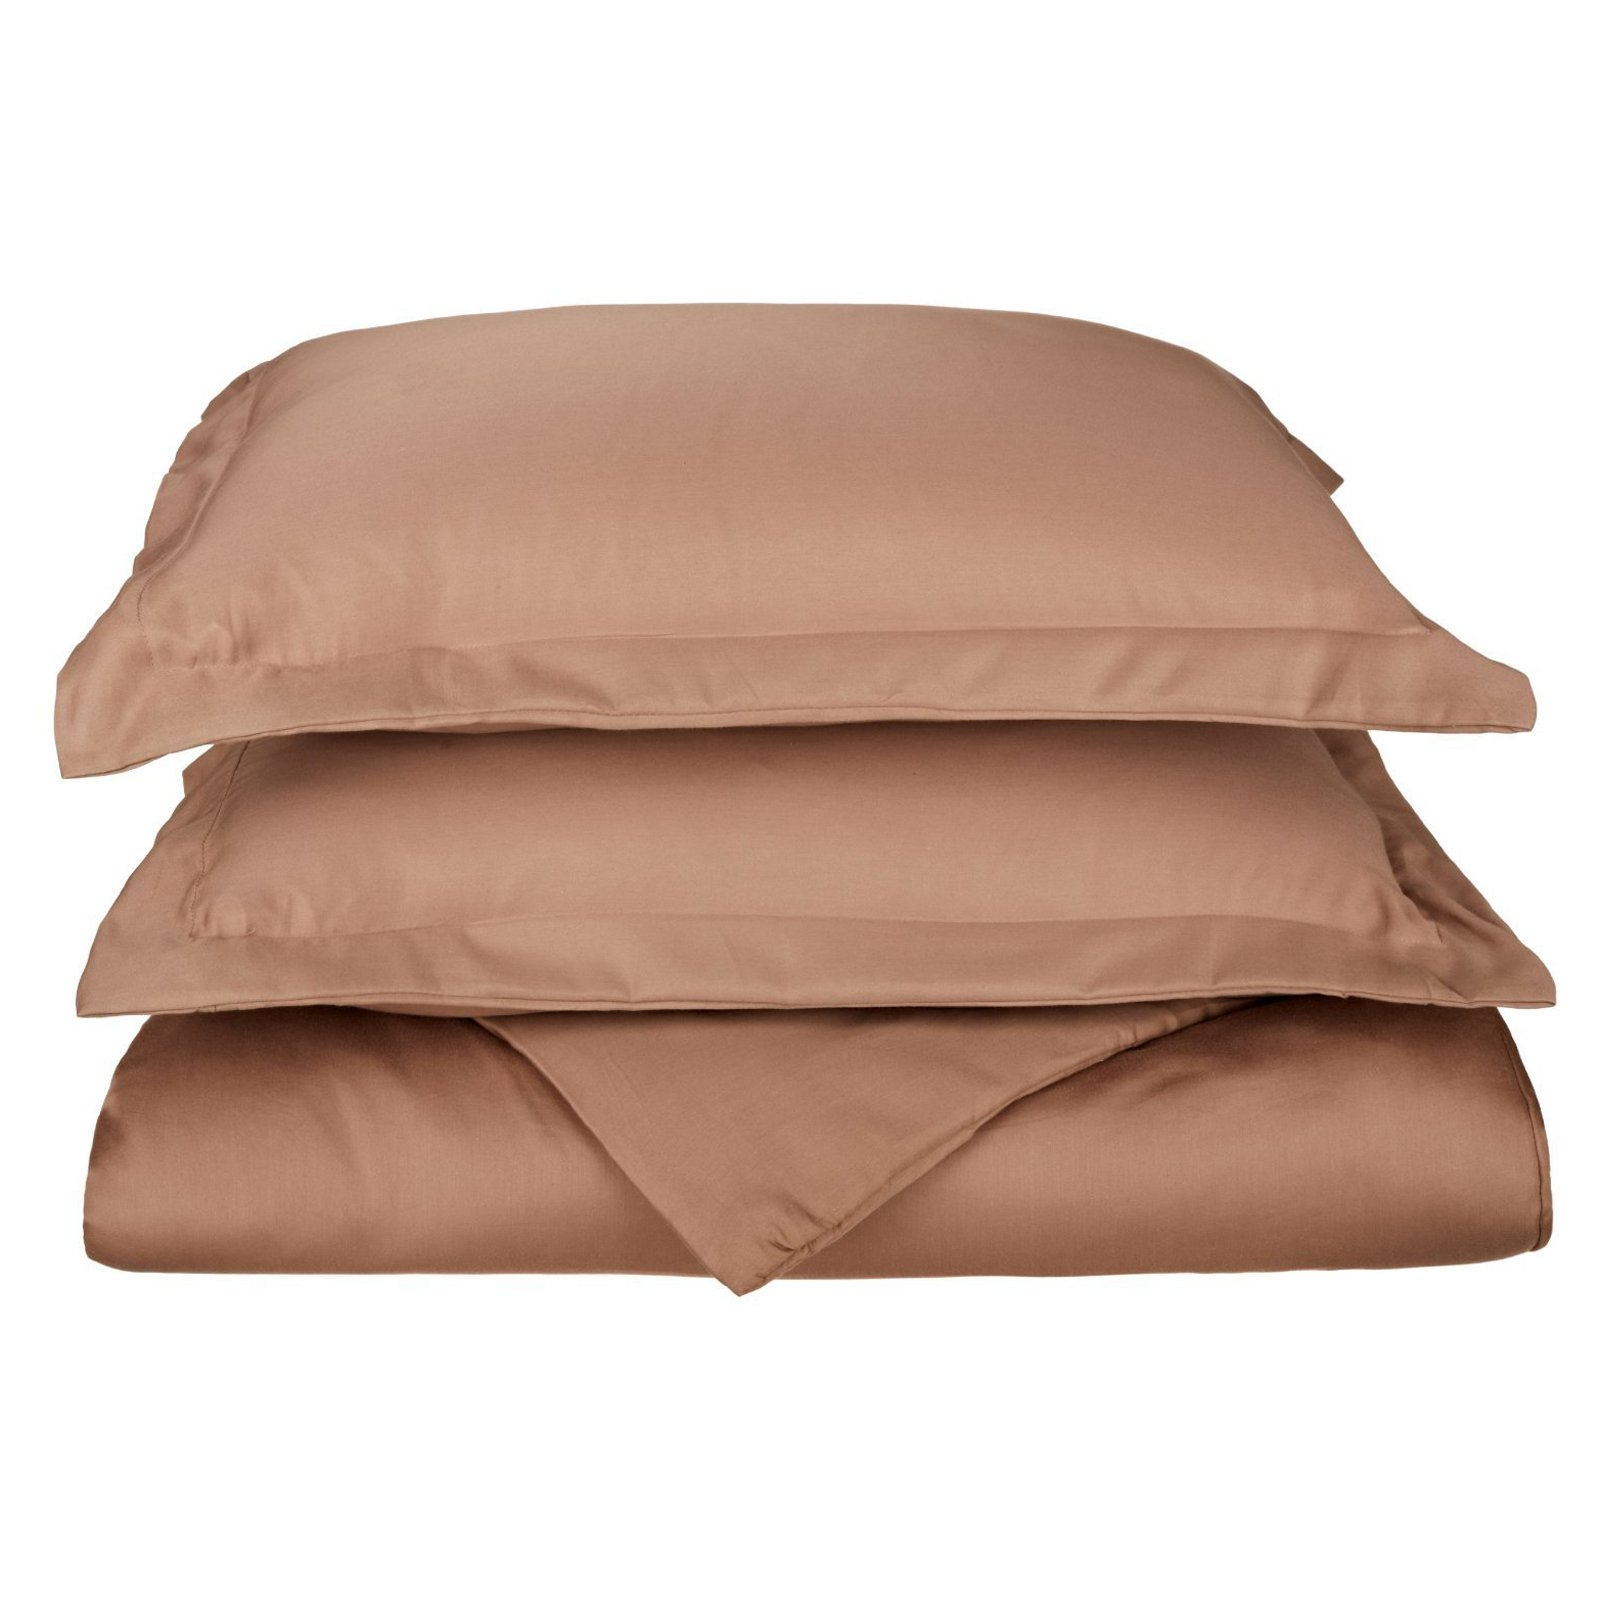 Superior Cotton Rich 600TC Hemstitch Duvet Cover 3 Piece Set